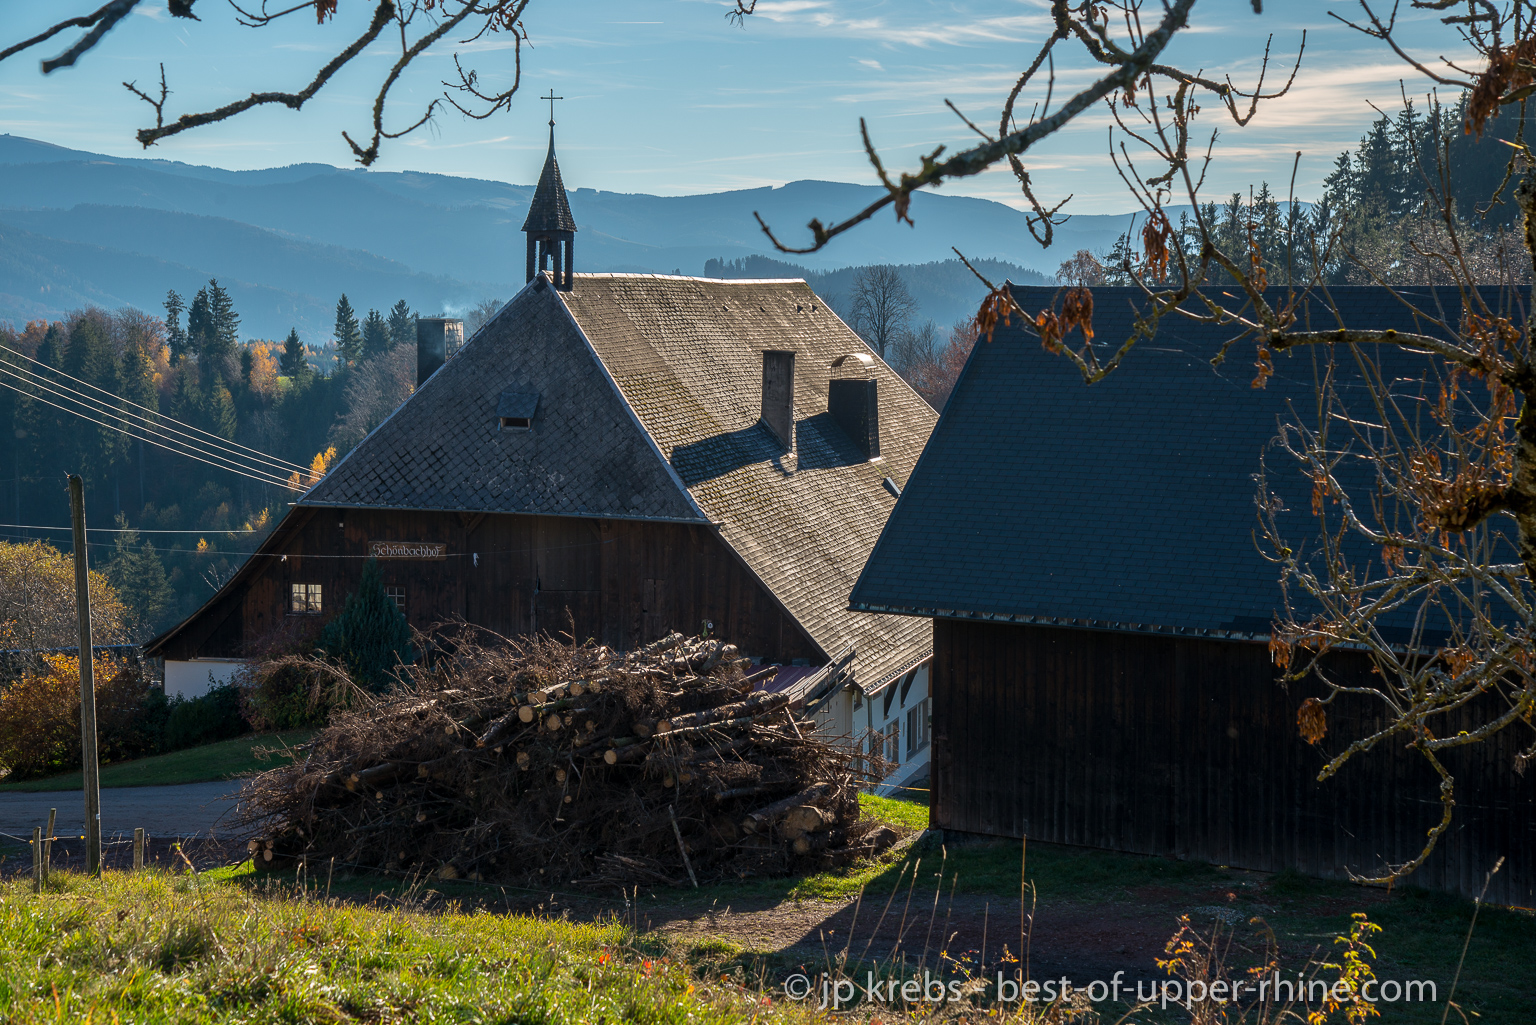 A day out in Black Forrest